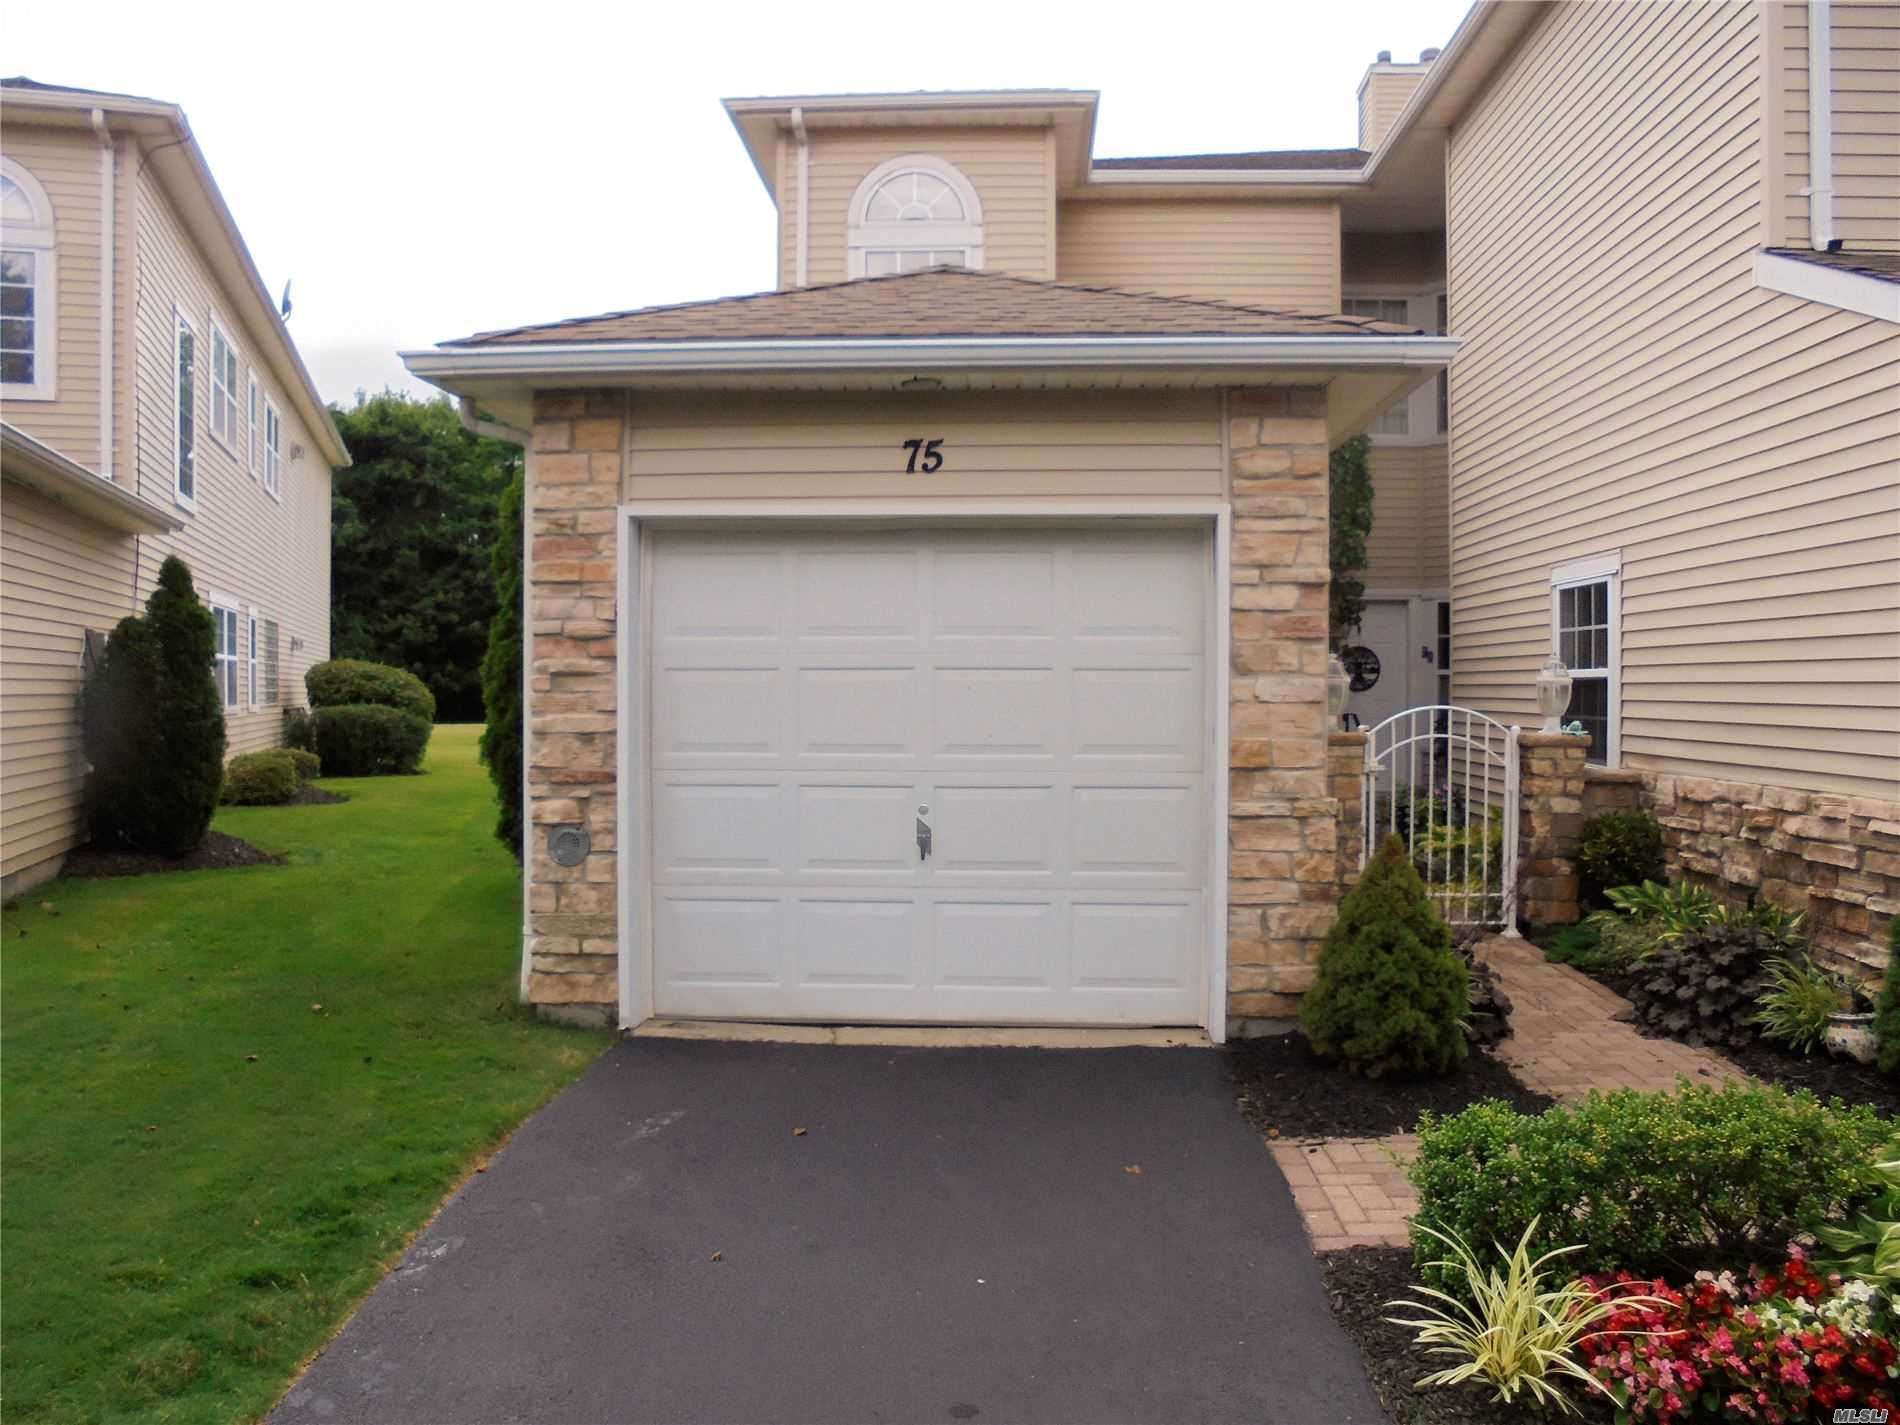 75 Windwatch Dr, Hauppauge, NY 11788 - MLS#: 3228206